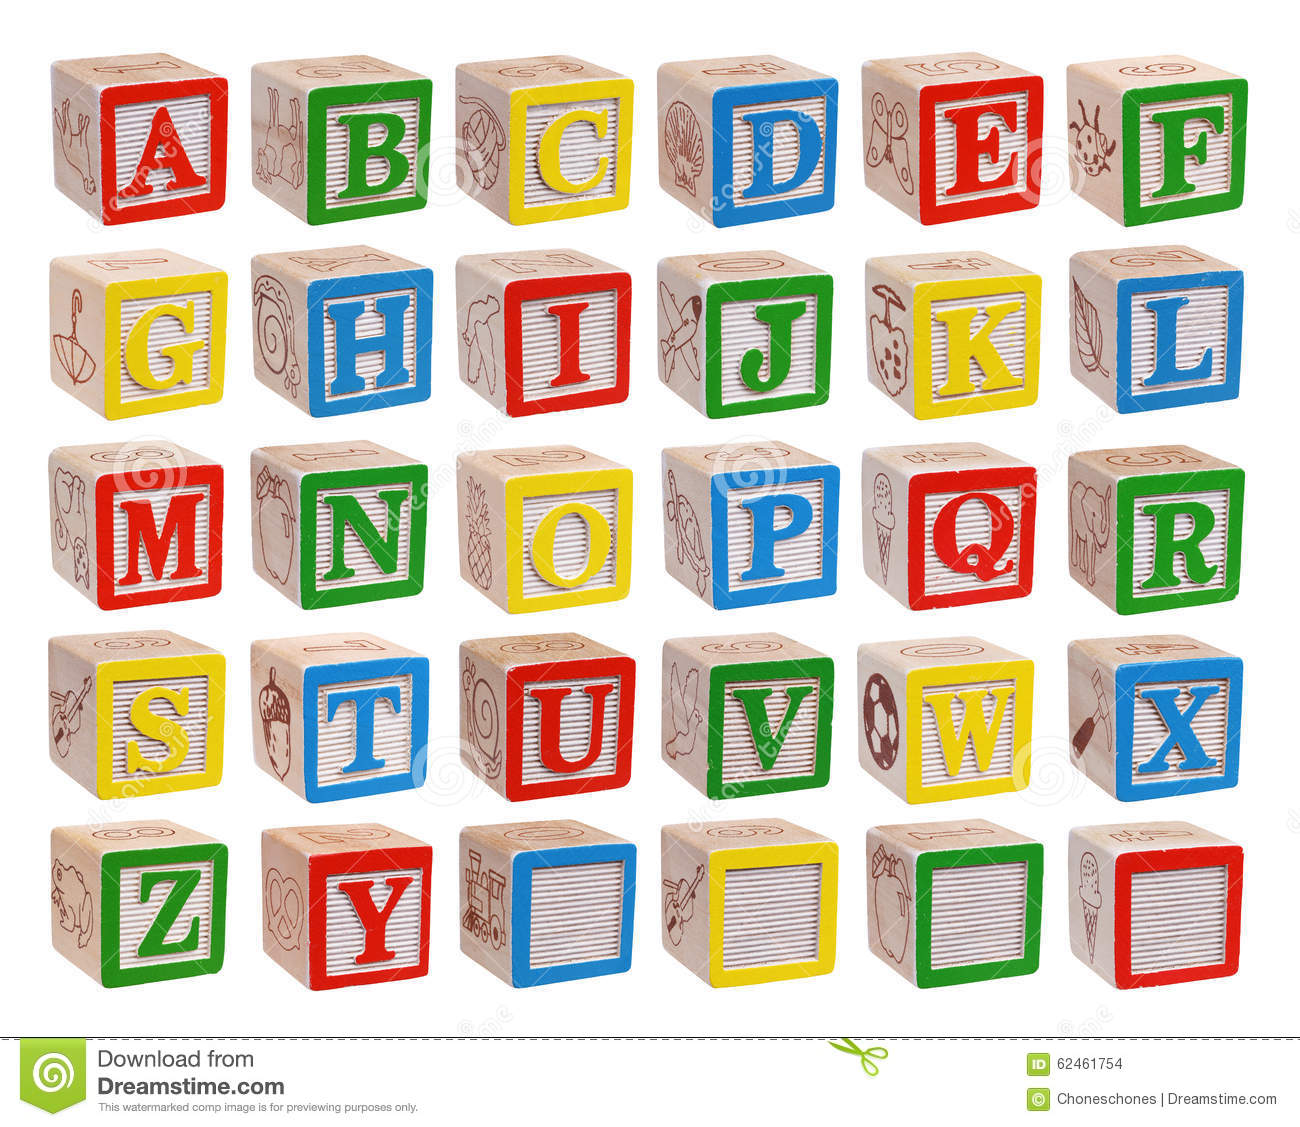 Alphabet Blocks Stock Photo - Image: 62461754